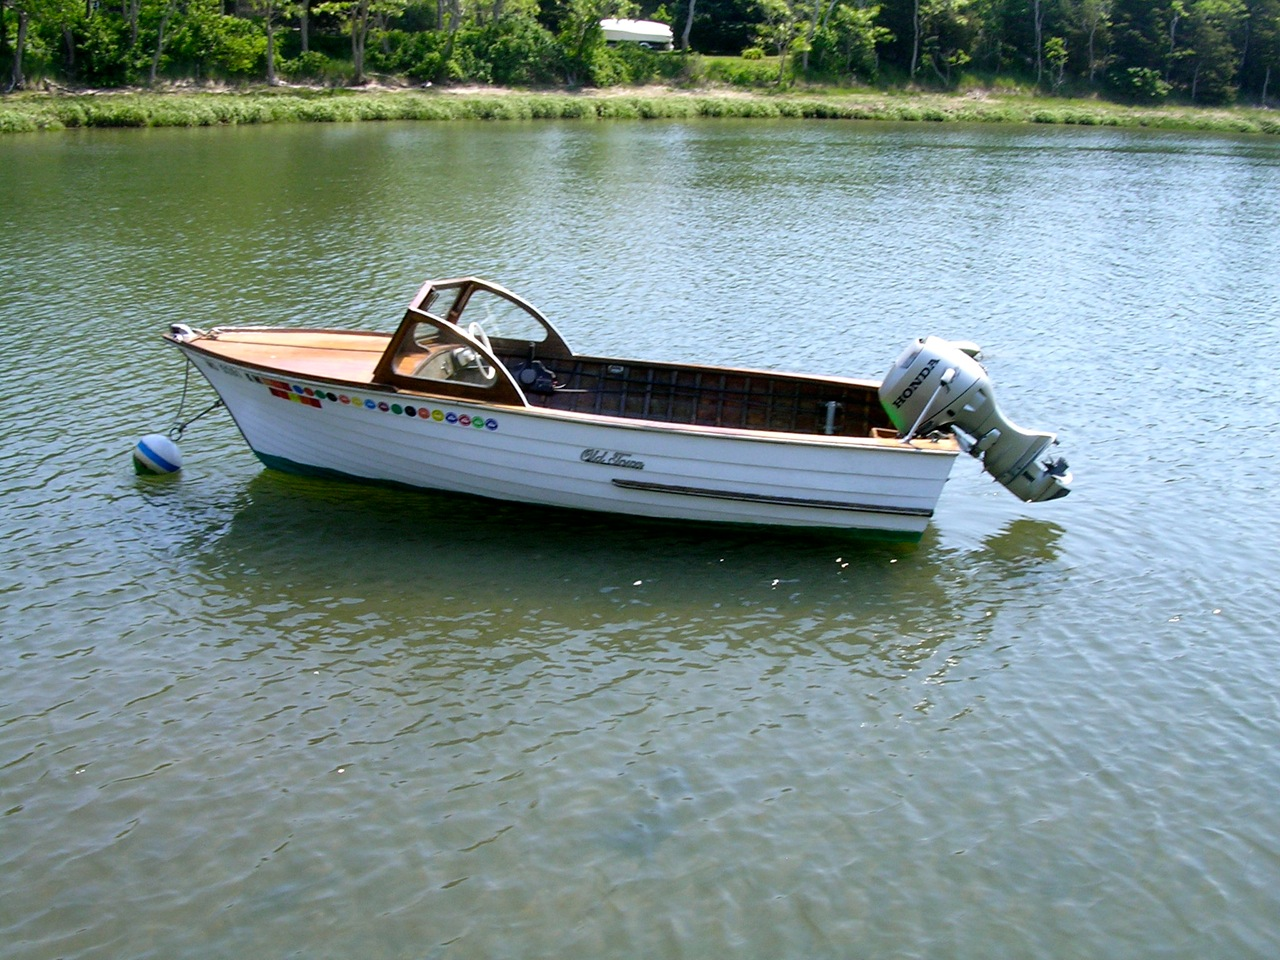 Old motor boat plans boat stores ottawa ontario events for Small boat motor repair